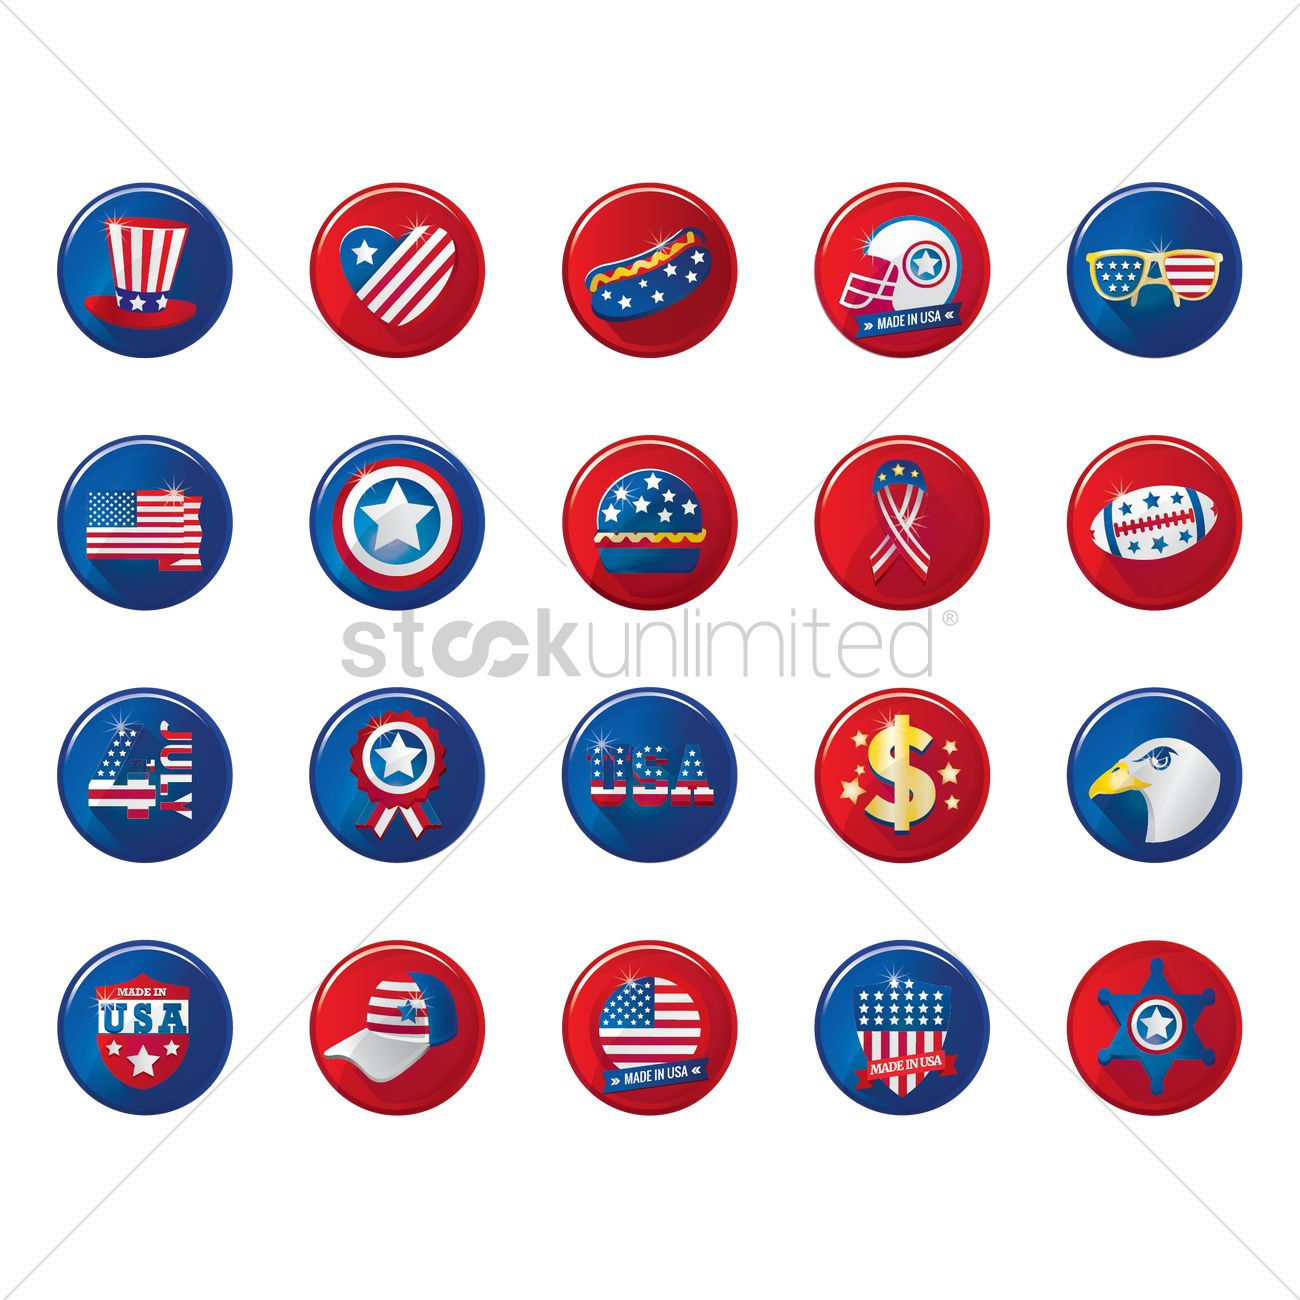 Usa Symbols Collection Vector Image 1531588 Stockunlimited